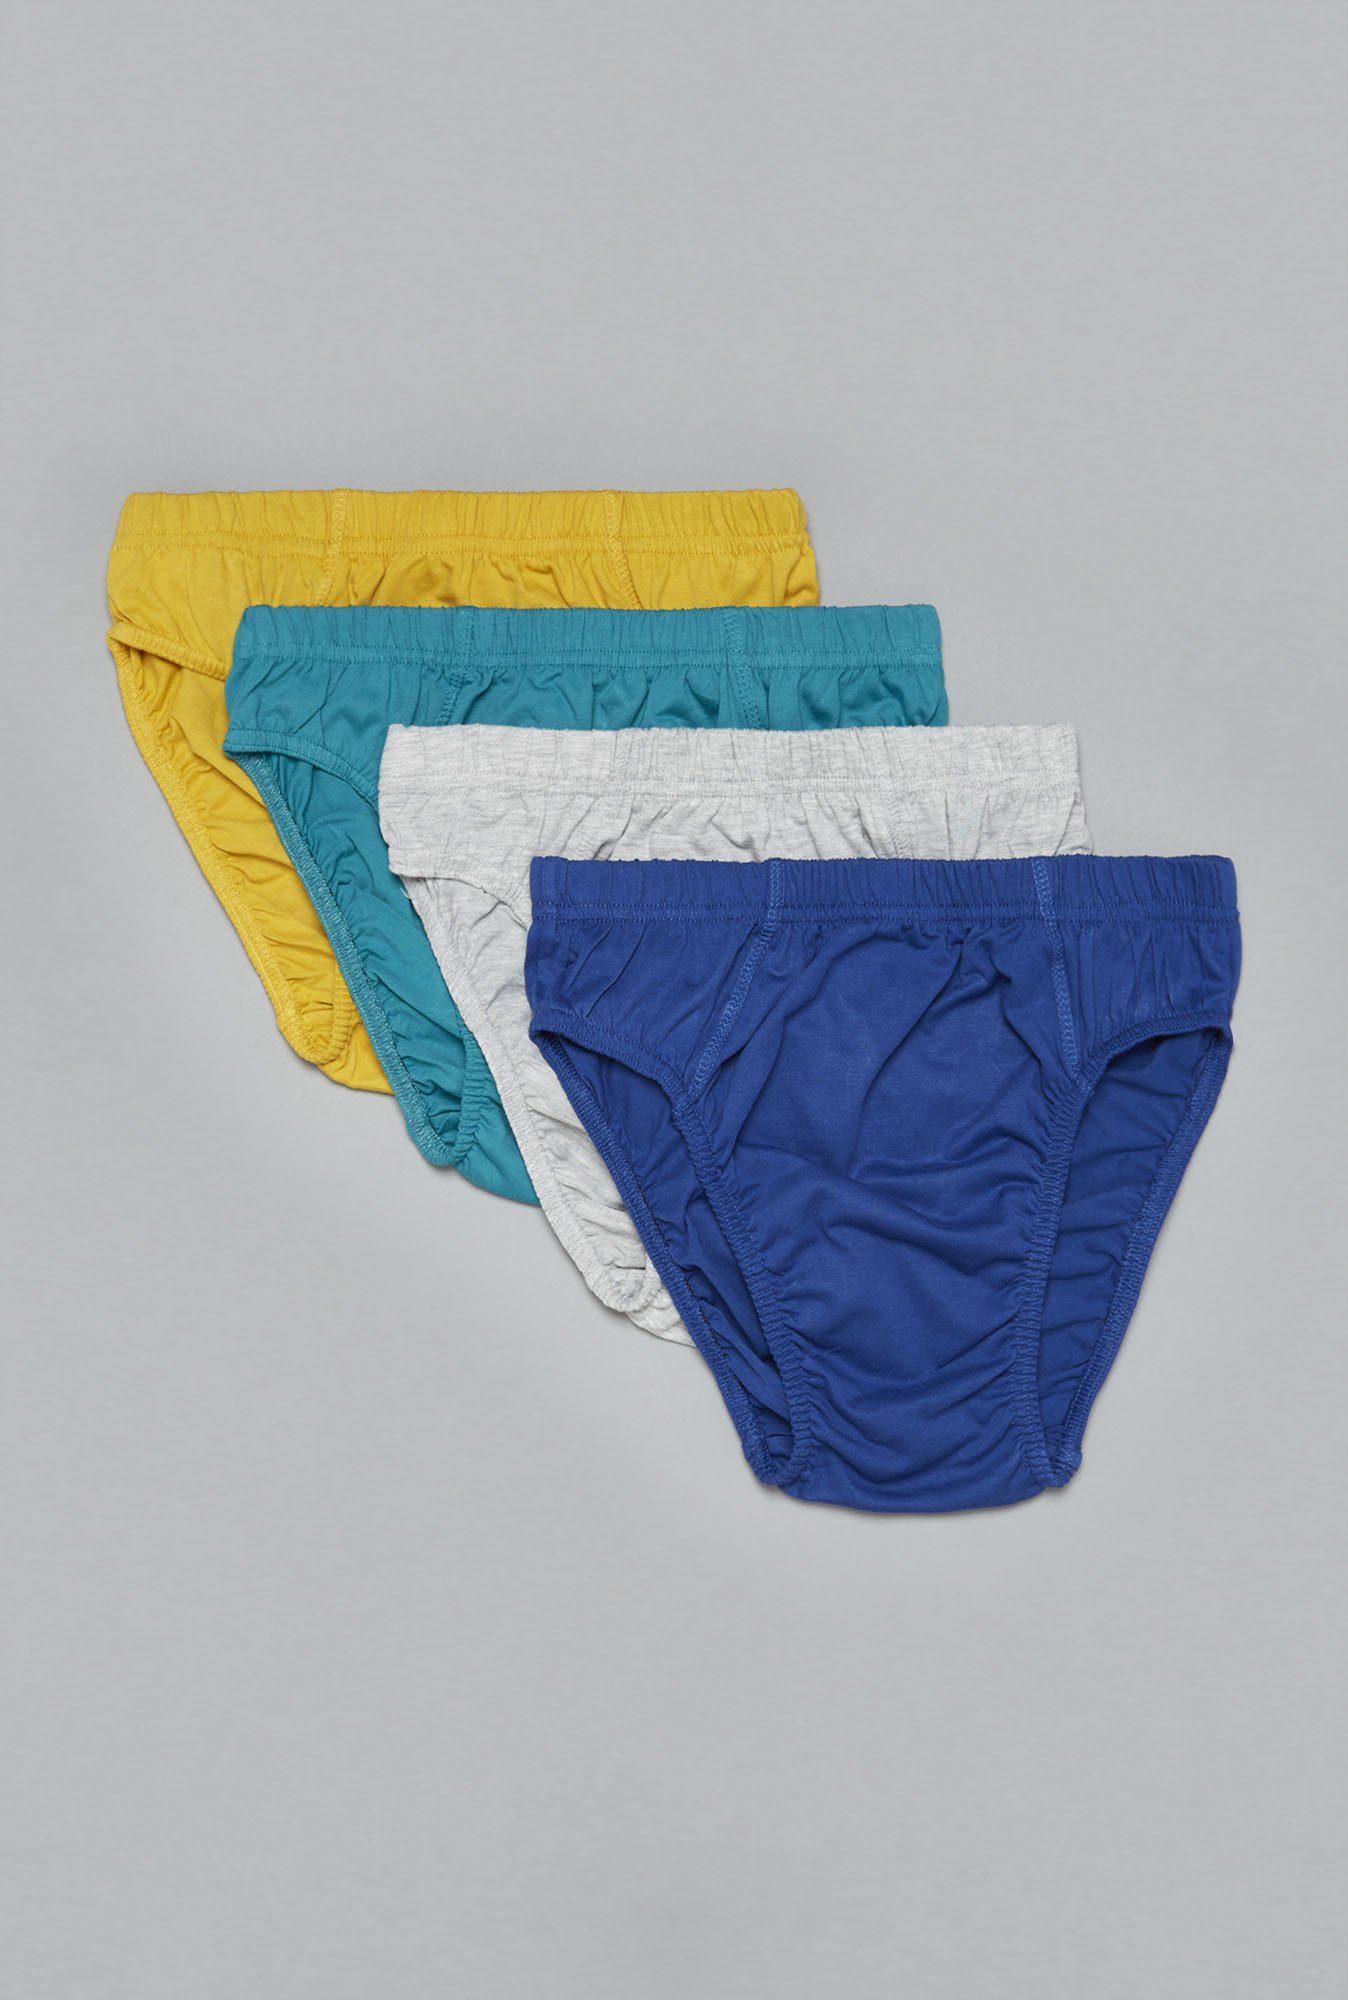 Westsport by Westside Grey, Blue, Yellow Briefs (Set Of 4)